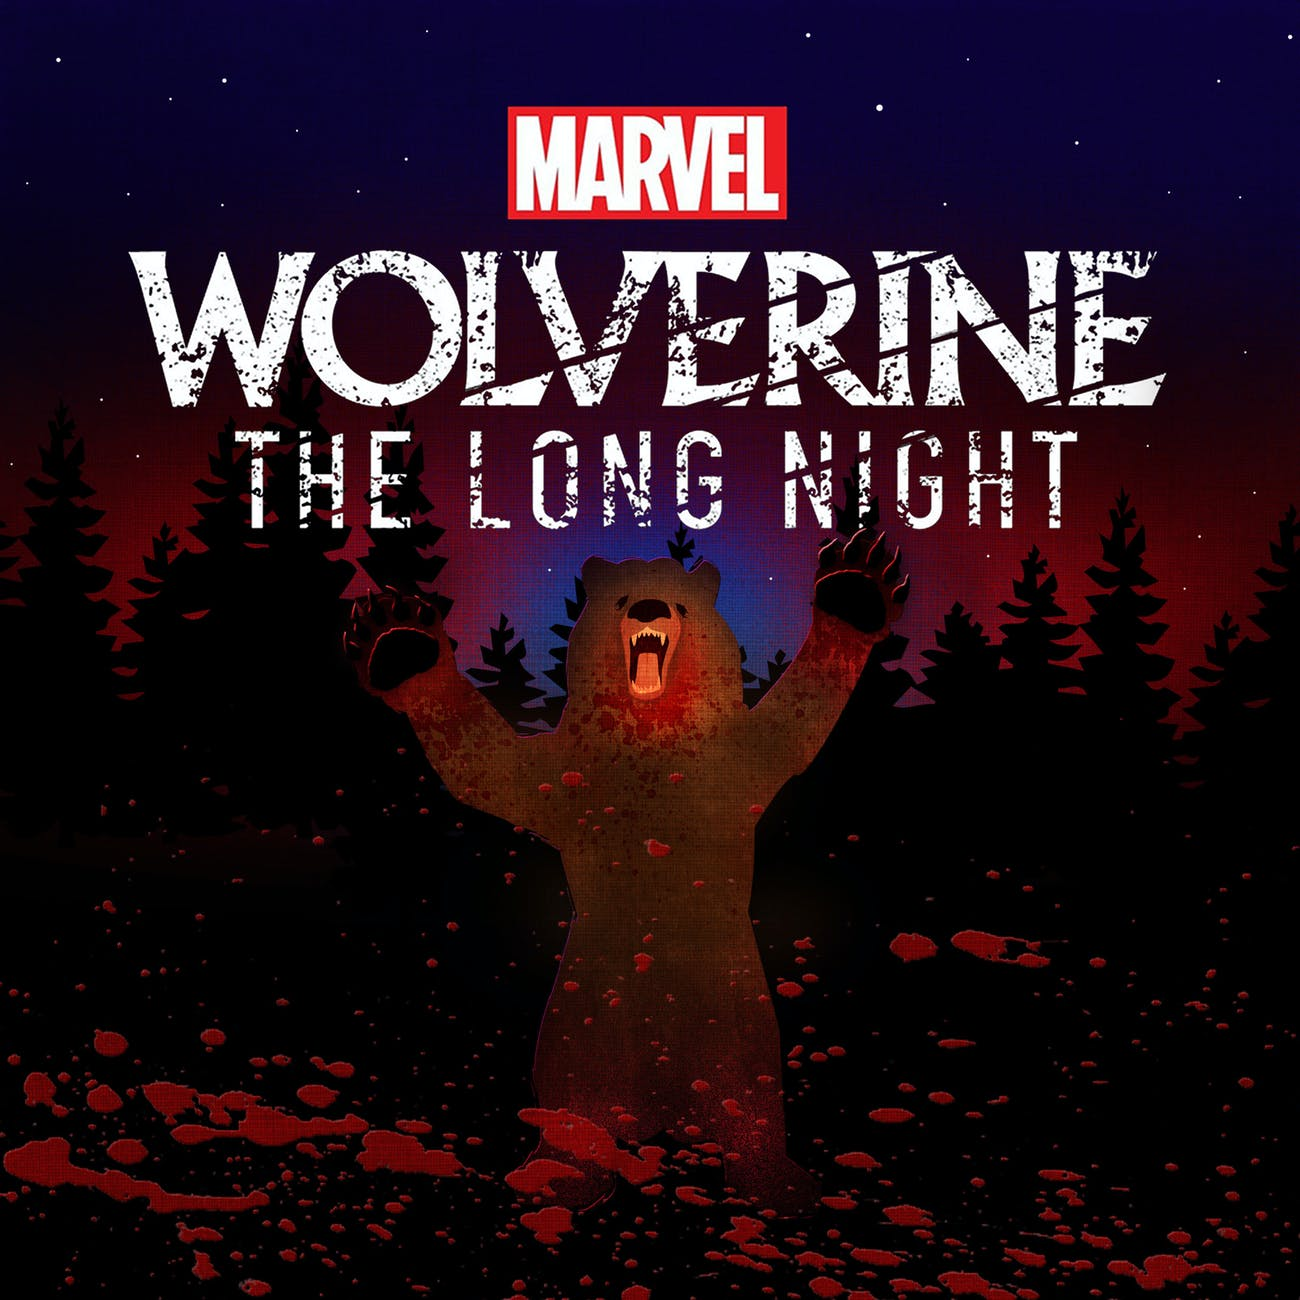 'Wolverine: The Long Night' Episode 5 has a huge bear in it.